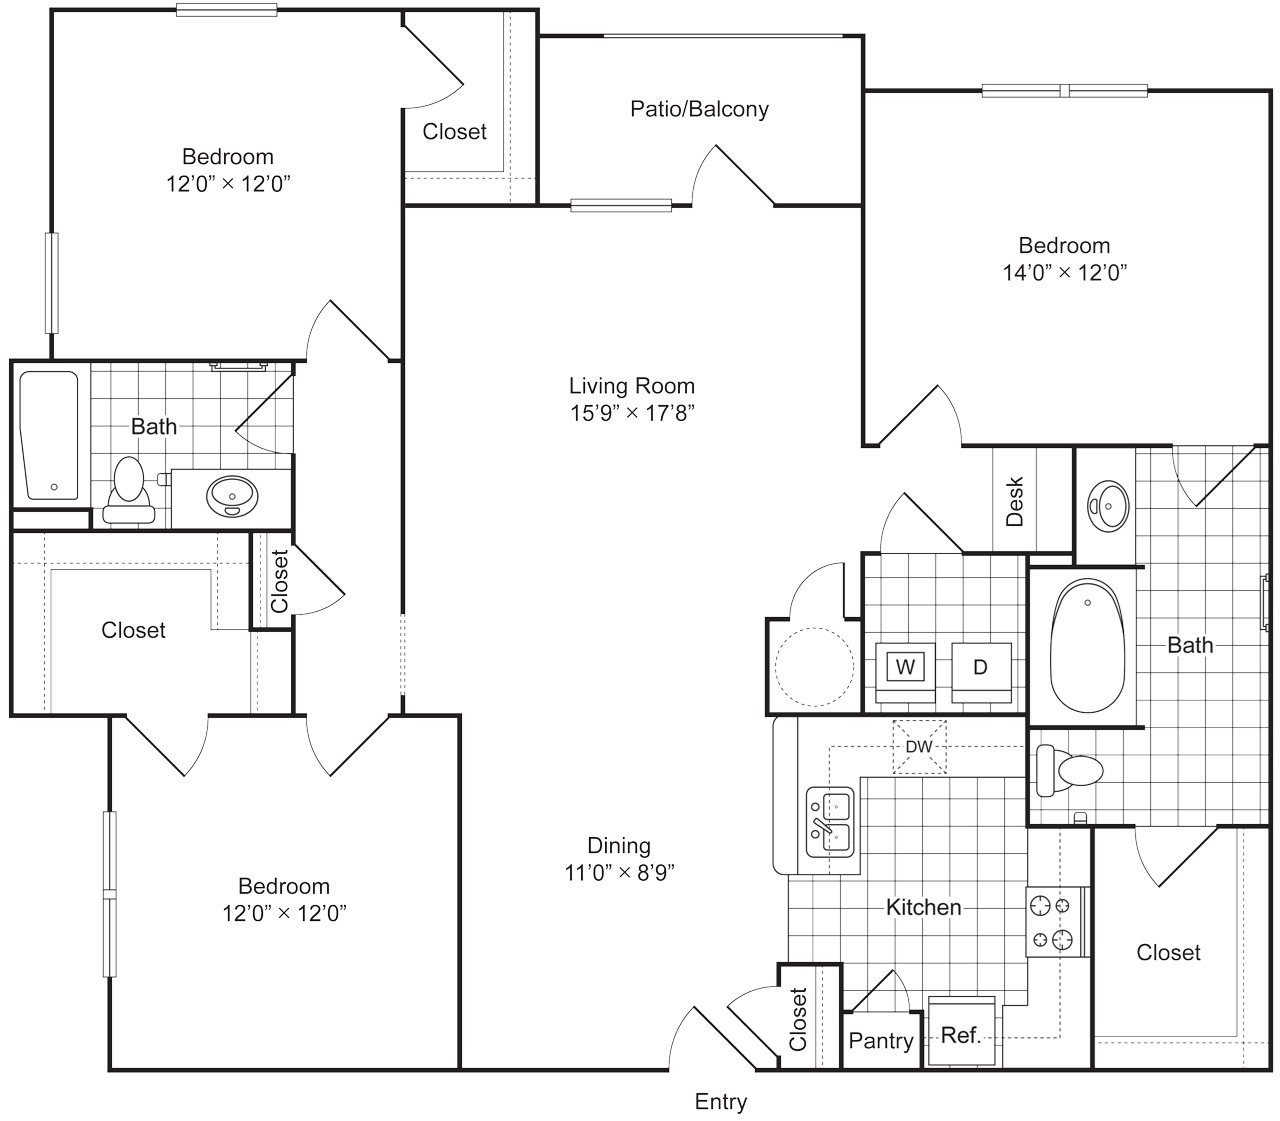 3 Bedroom 2 Bath 1479 sqft (C1) Floor Plan 6